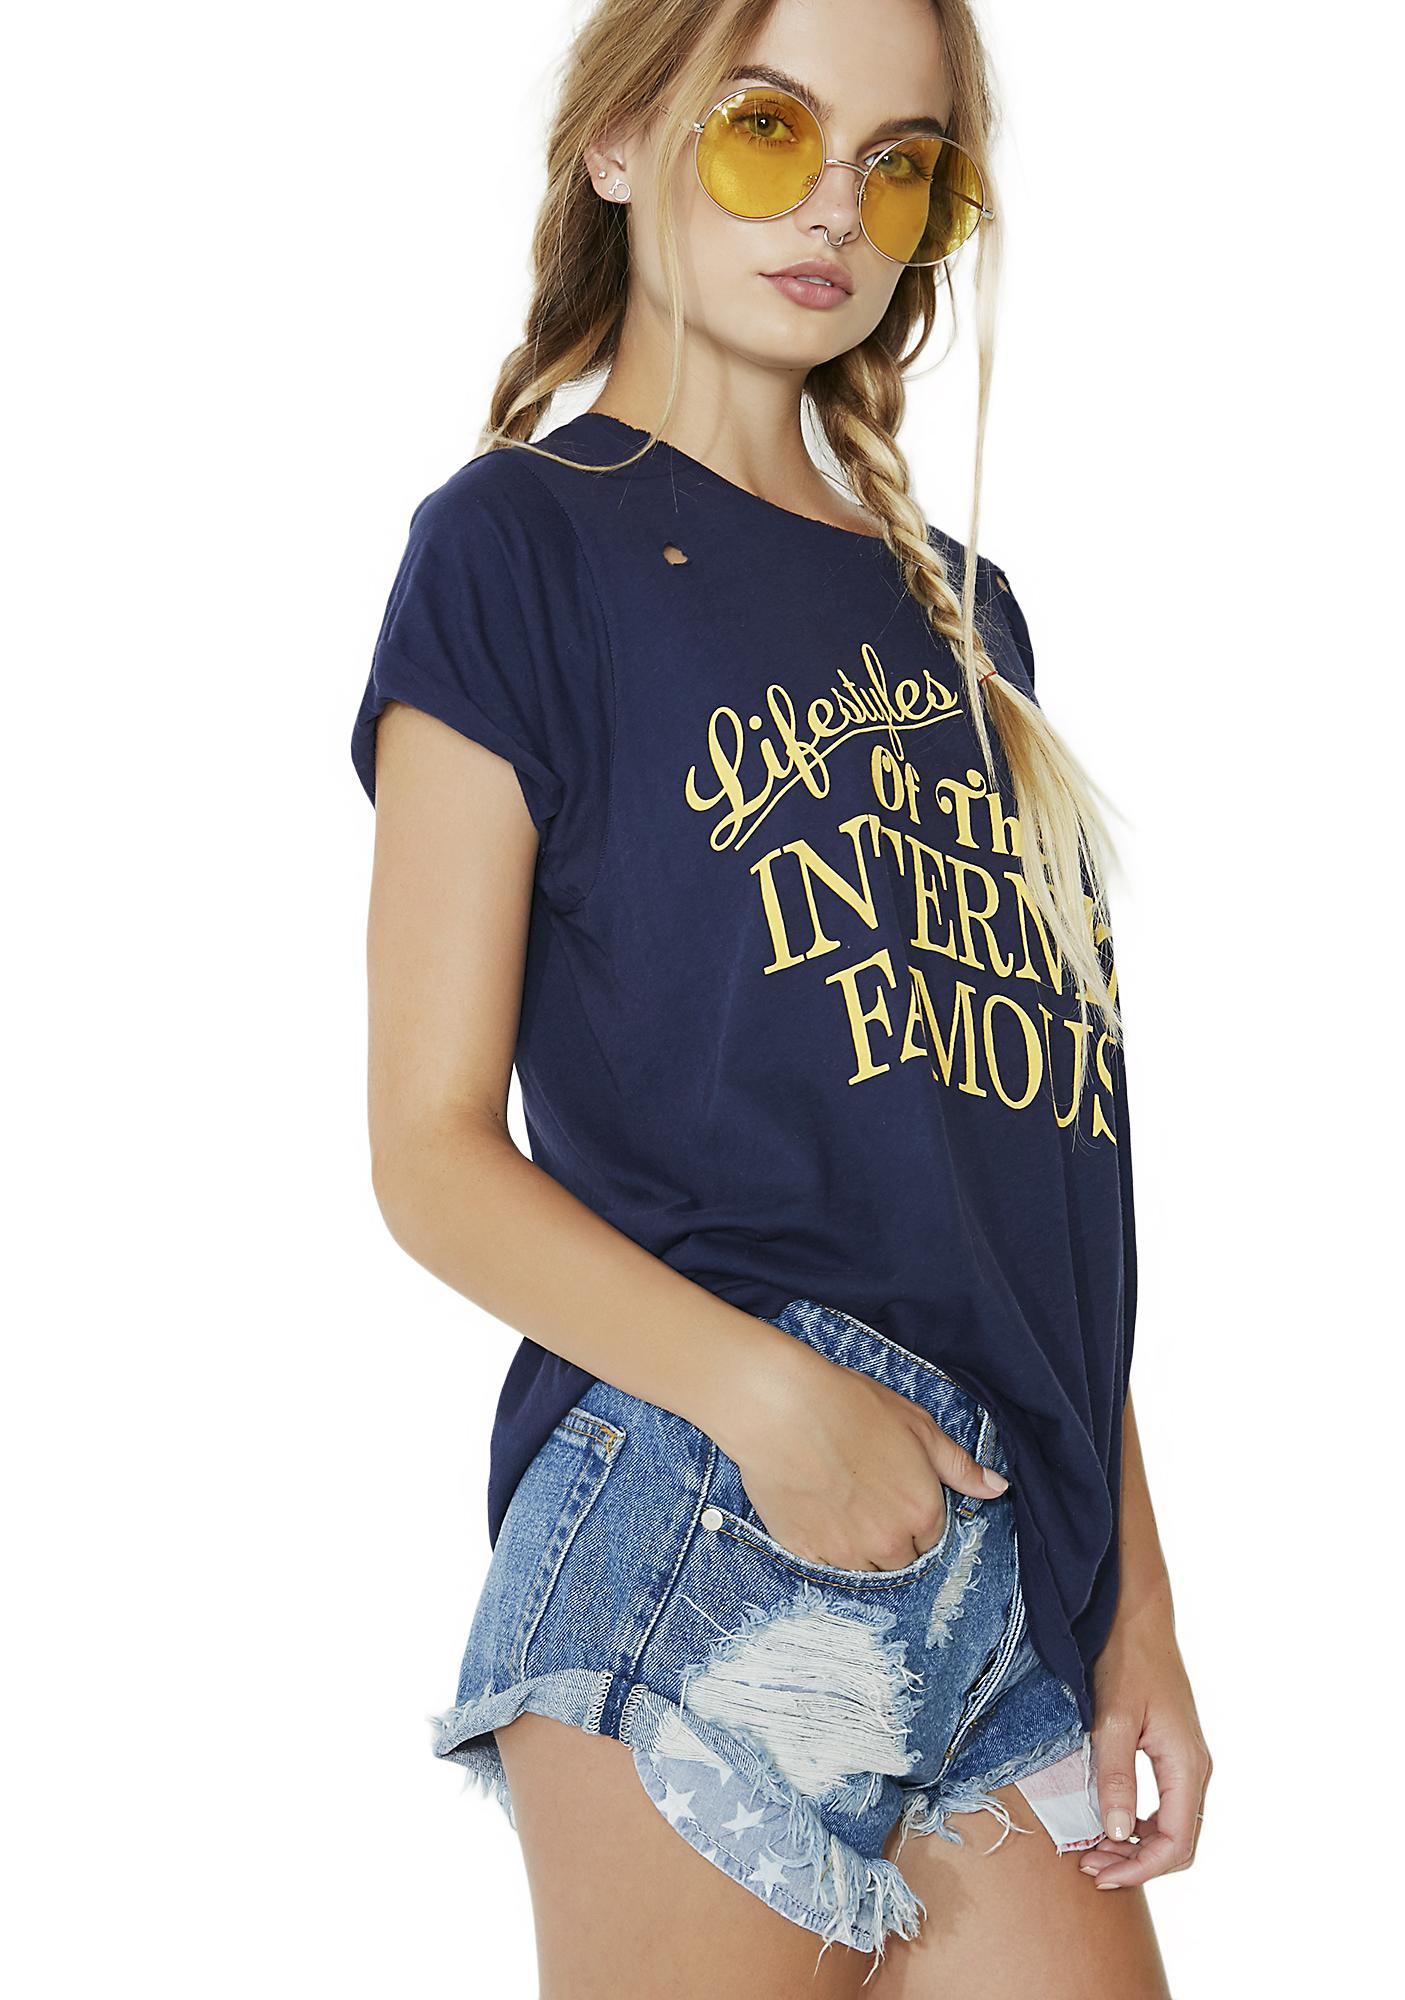 Wildfox Couture Internet Famous Crew Tee